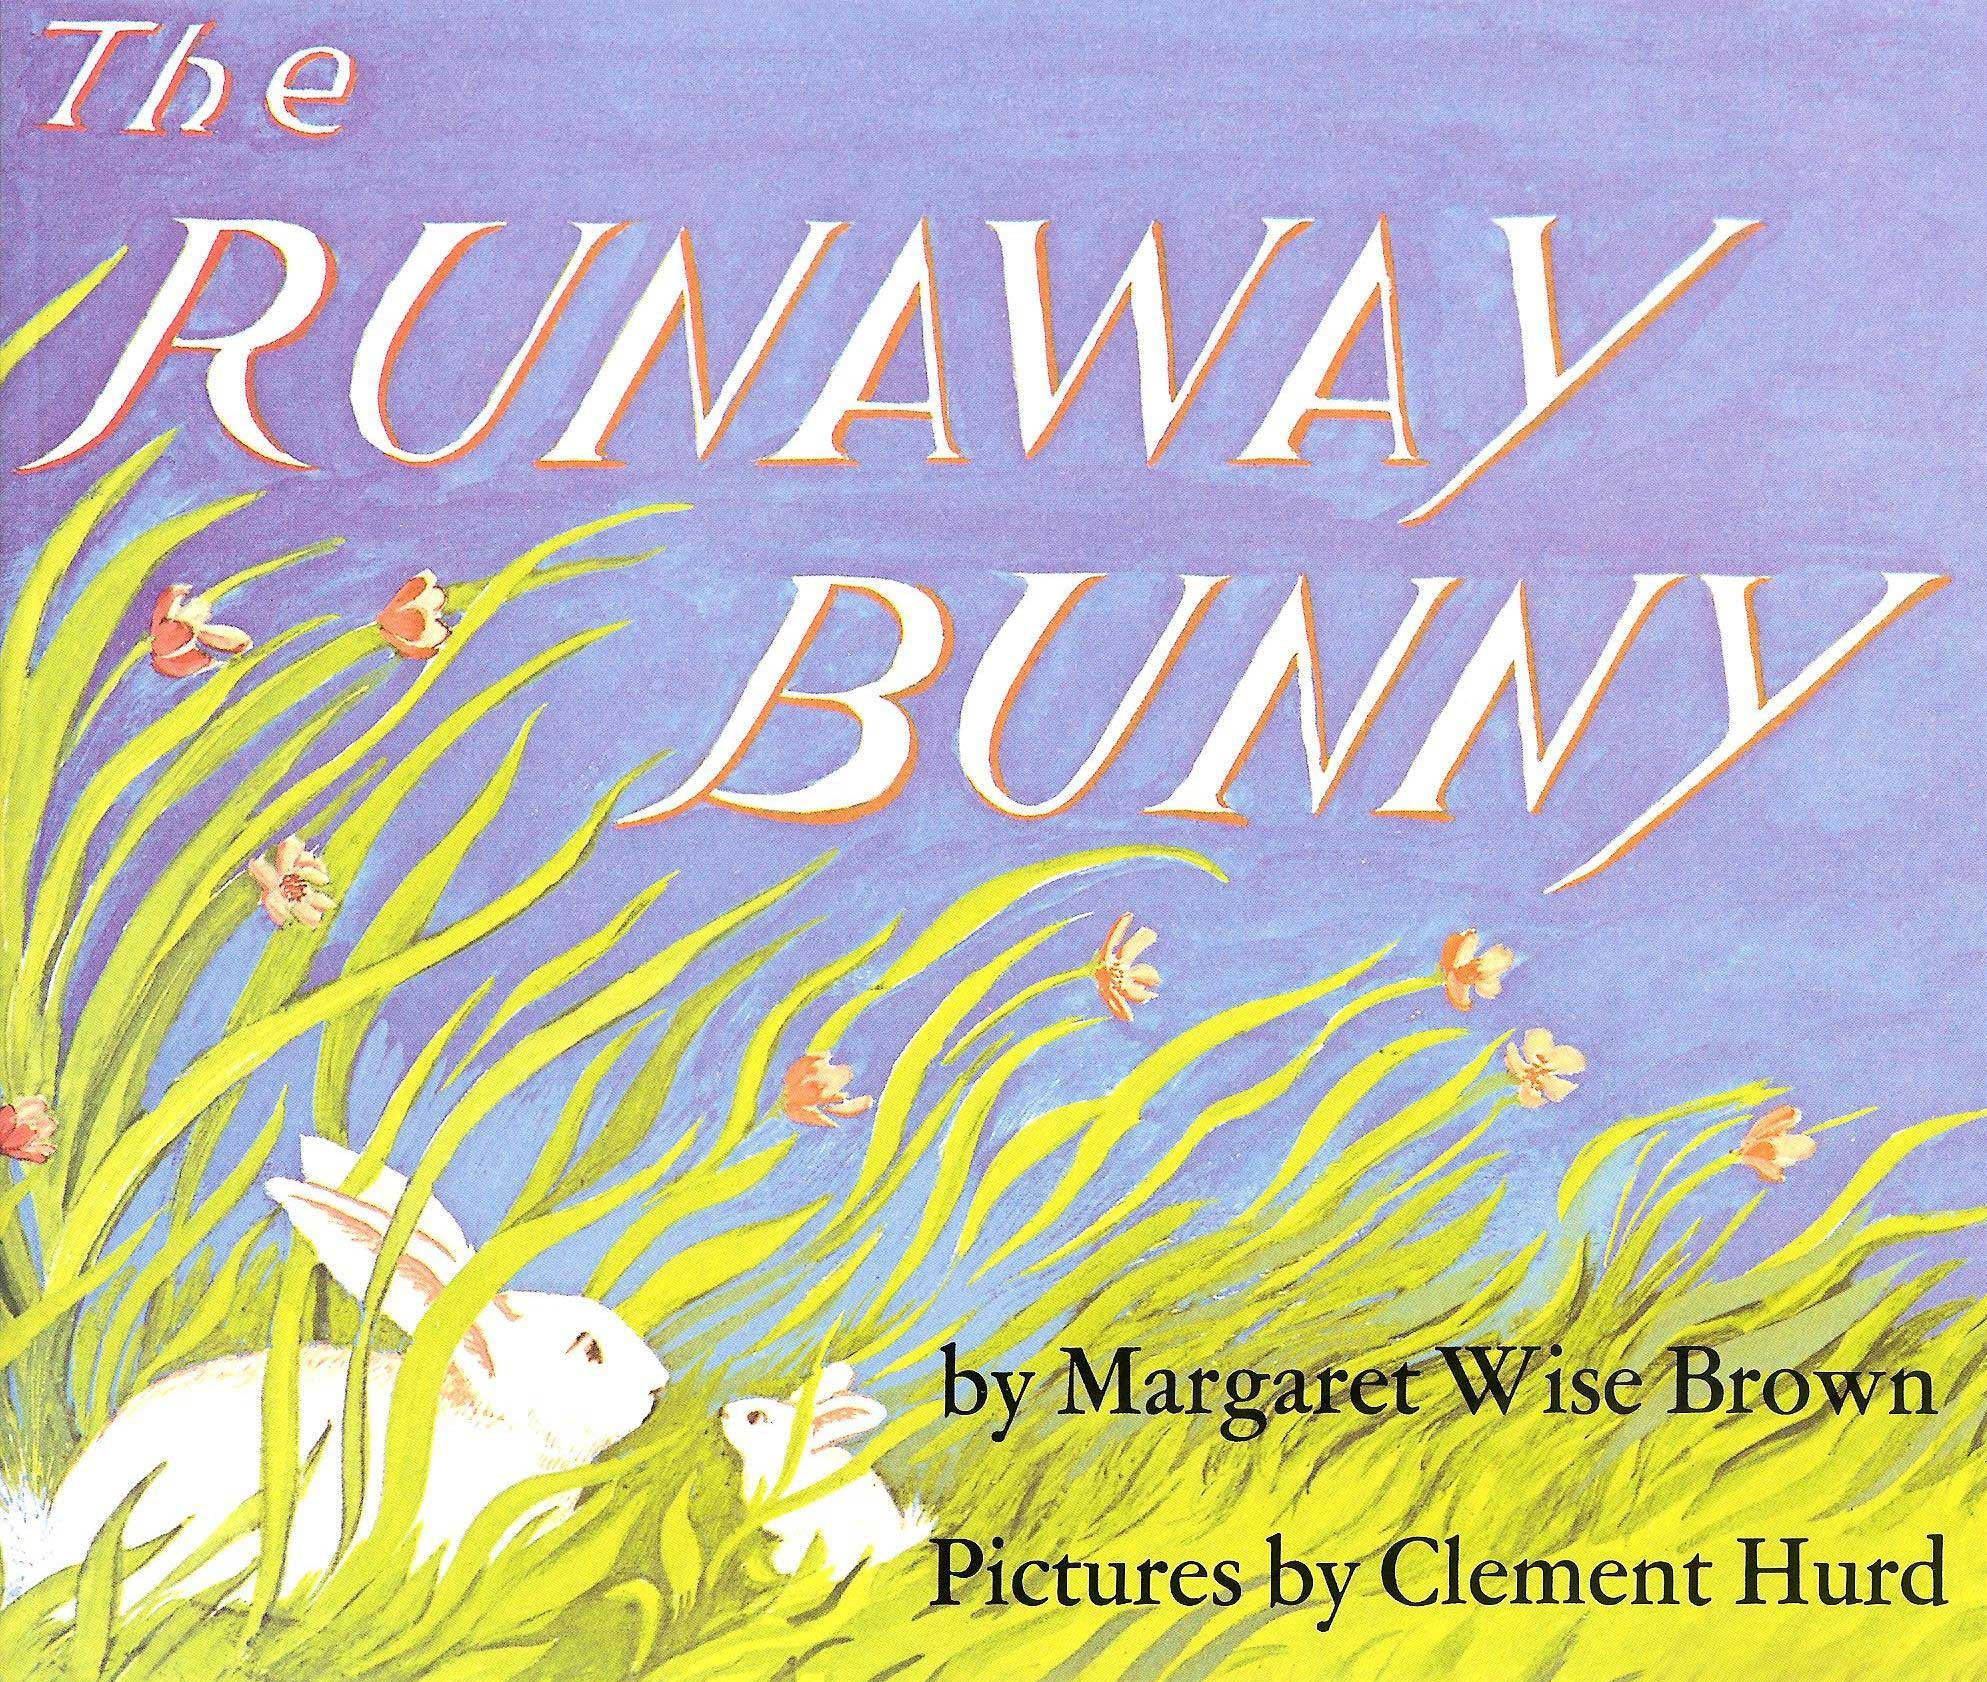 The Runaway Bunny, by Margaret Wise Brown, illustrations by Clement Hurd.                                                                                                                            A wandering bunny and his loving mother play hide-and-seek in this classic.                                                                                                                            Buy now: The Runaway Bunny